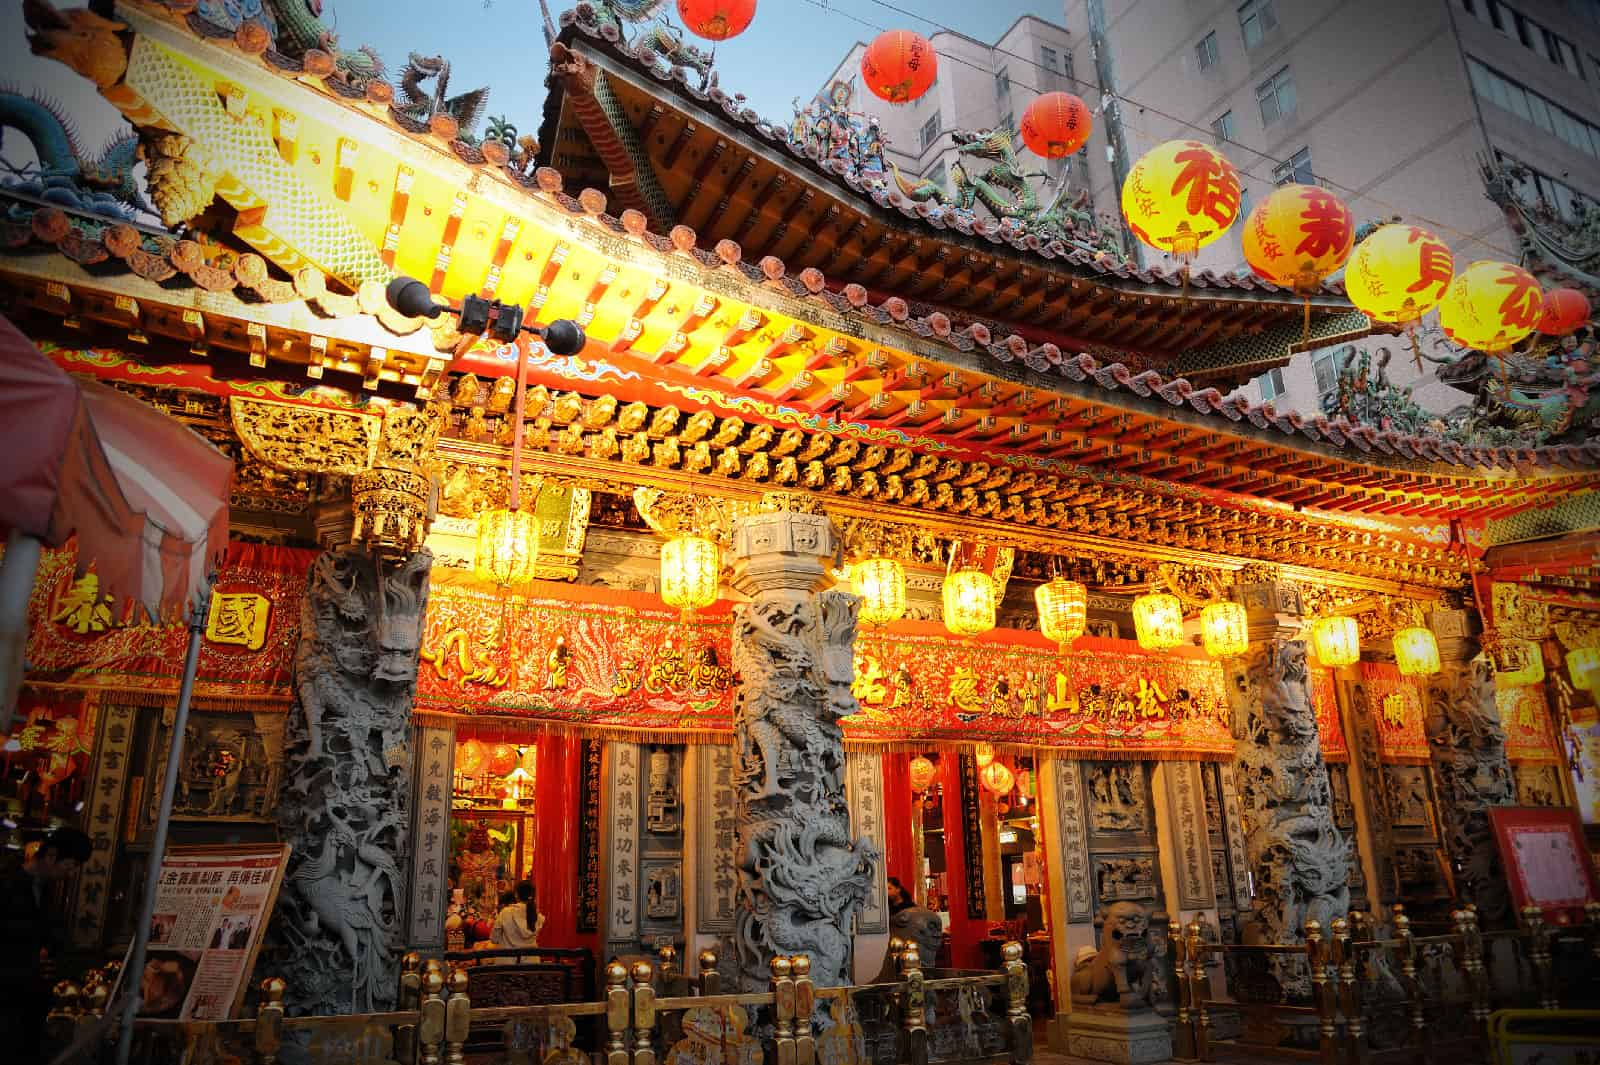 Ciyou Temple in Taipei, Taiwan